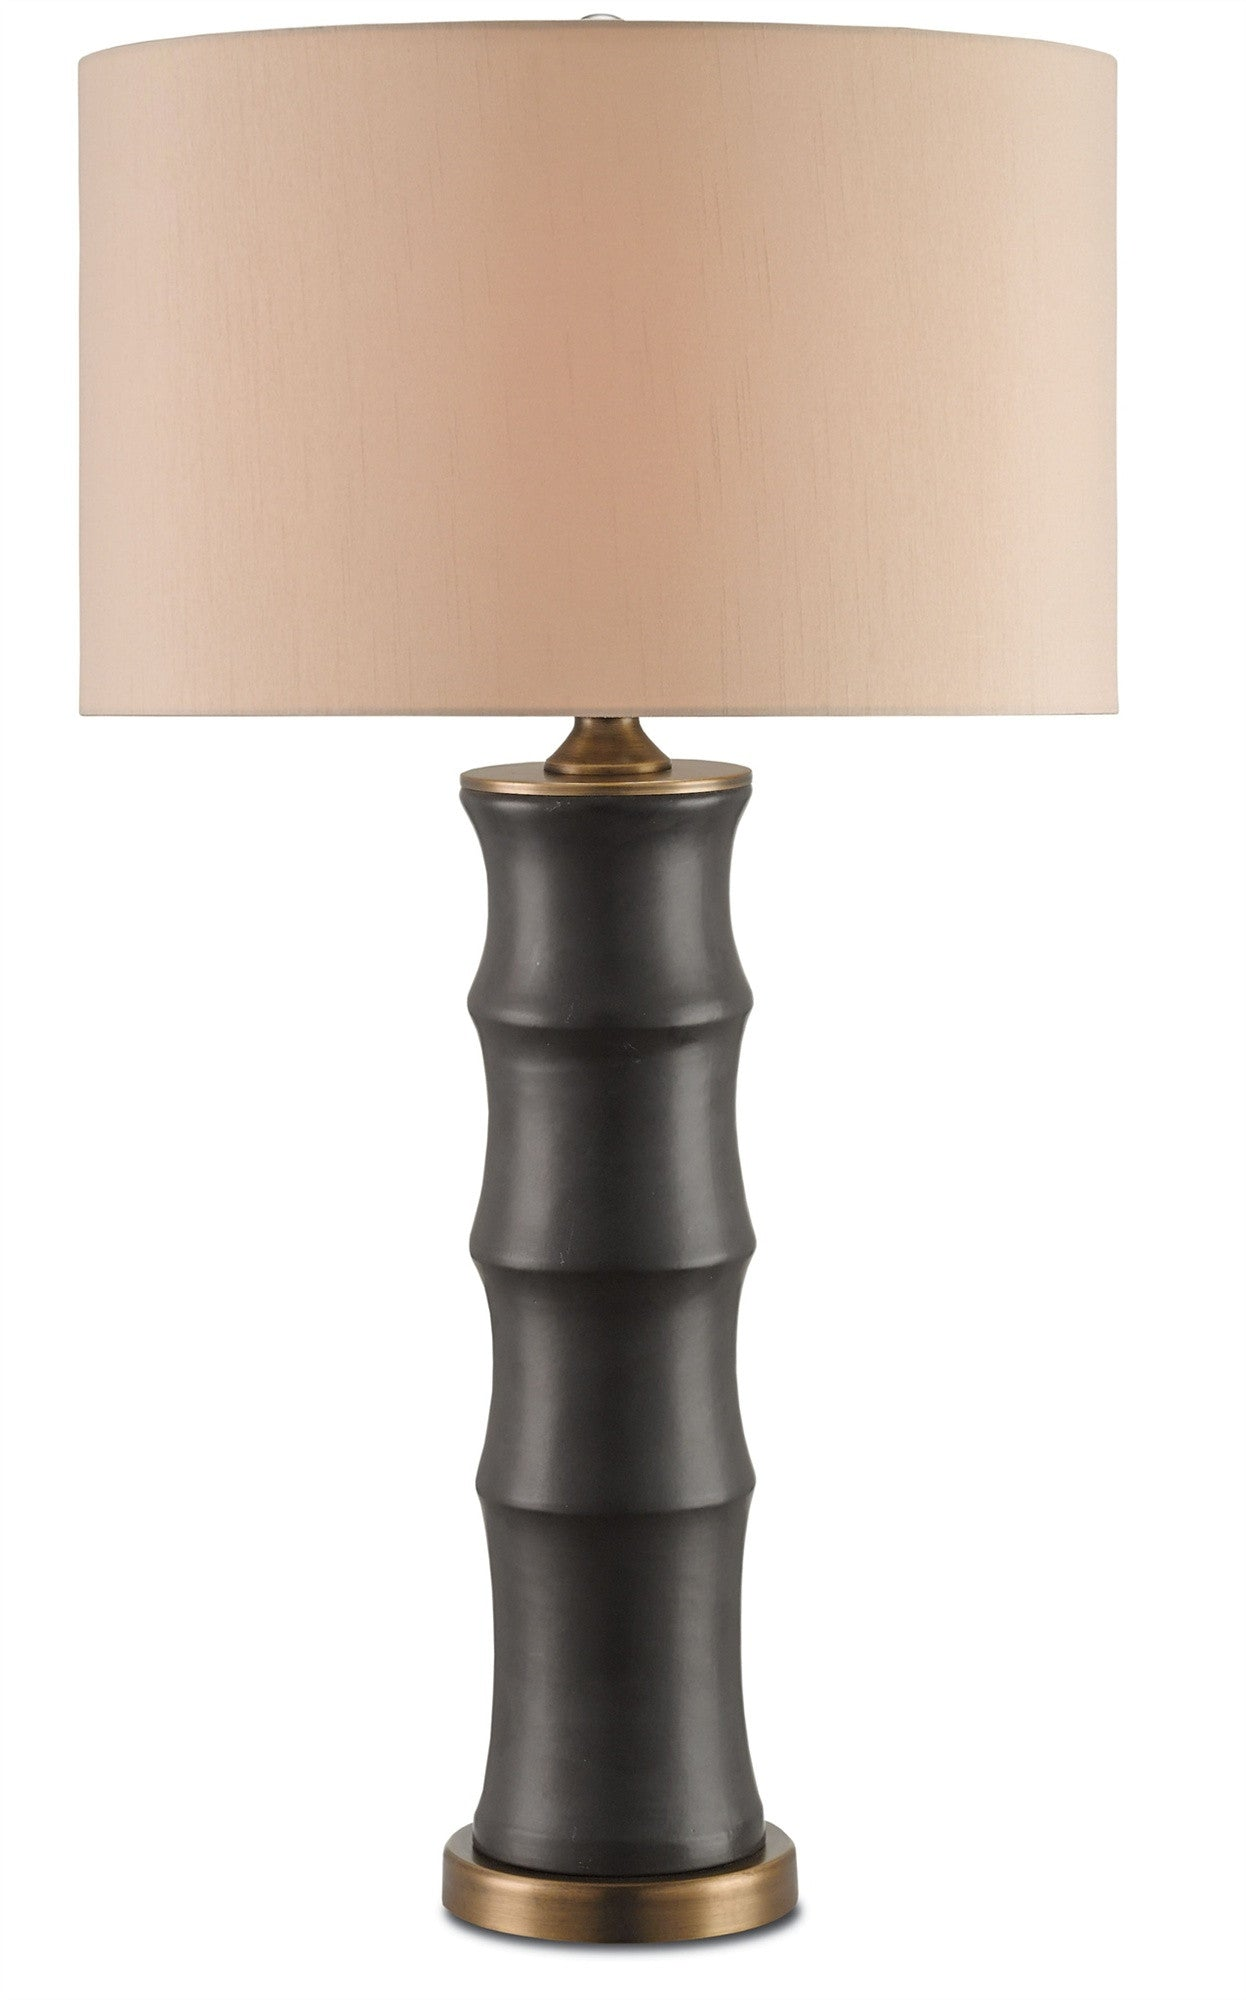 Roark Table Lamp design by Currey & Company